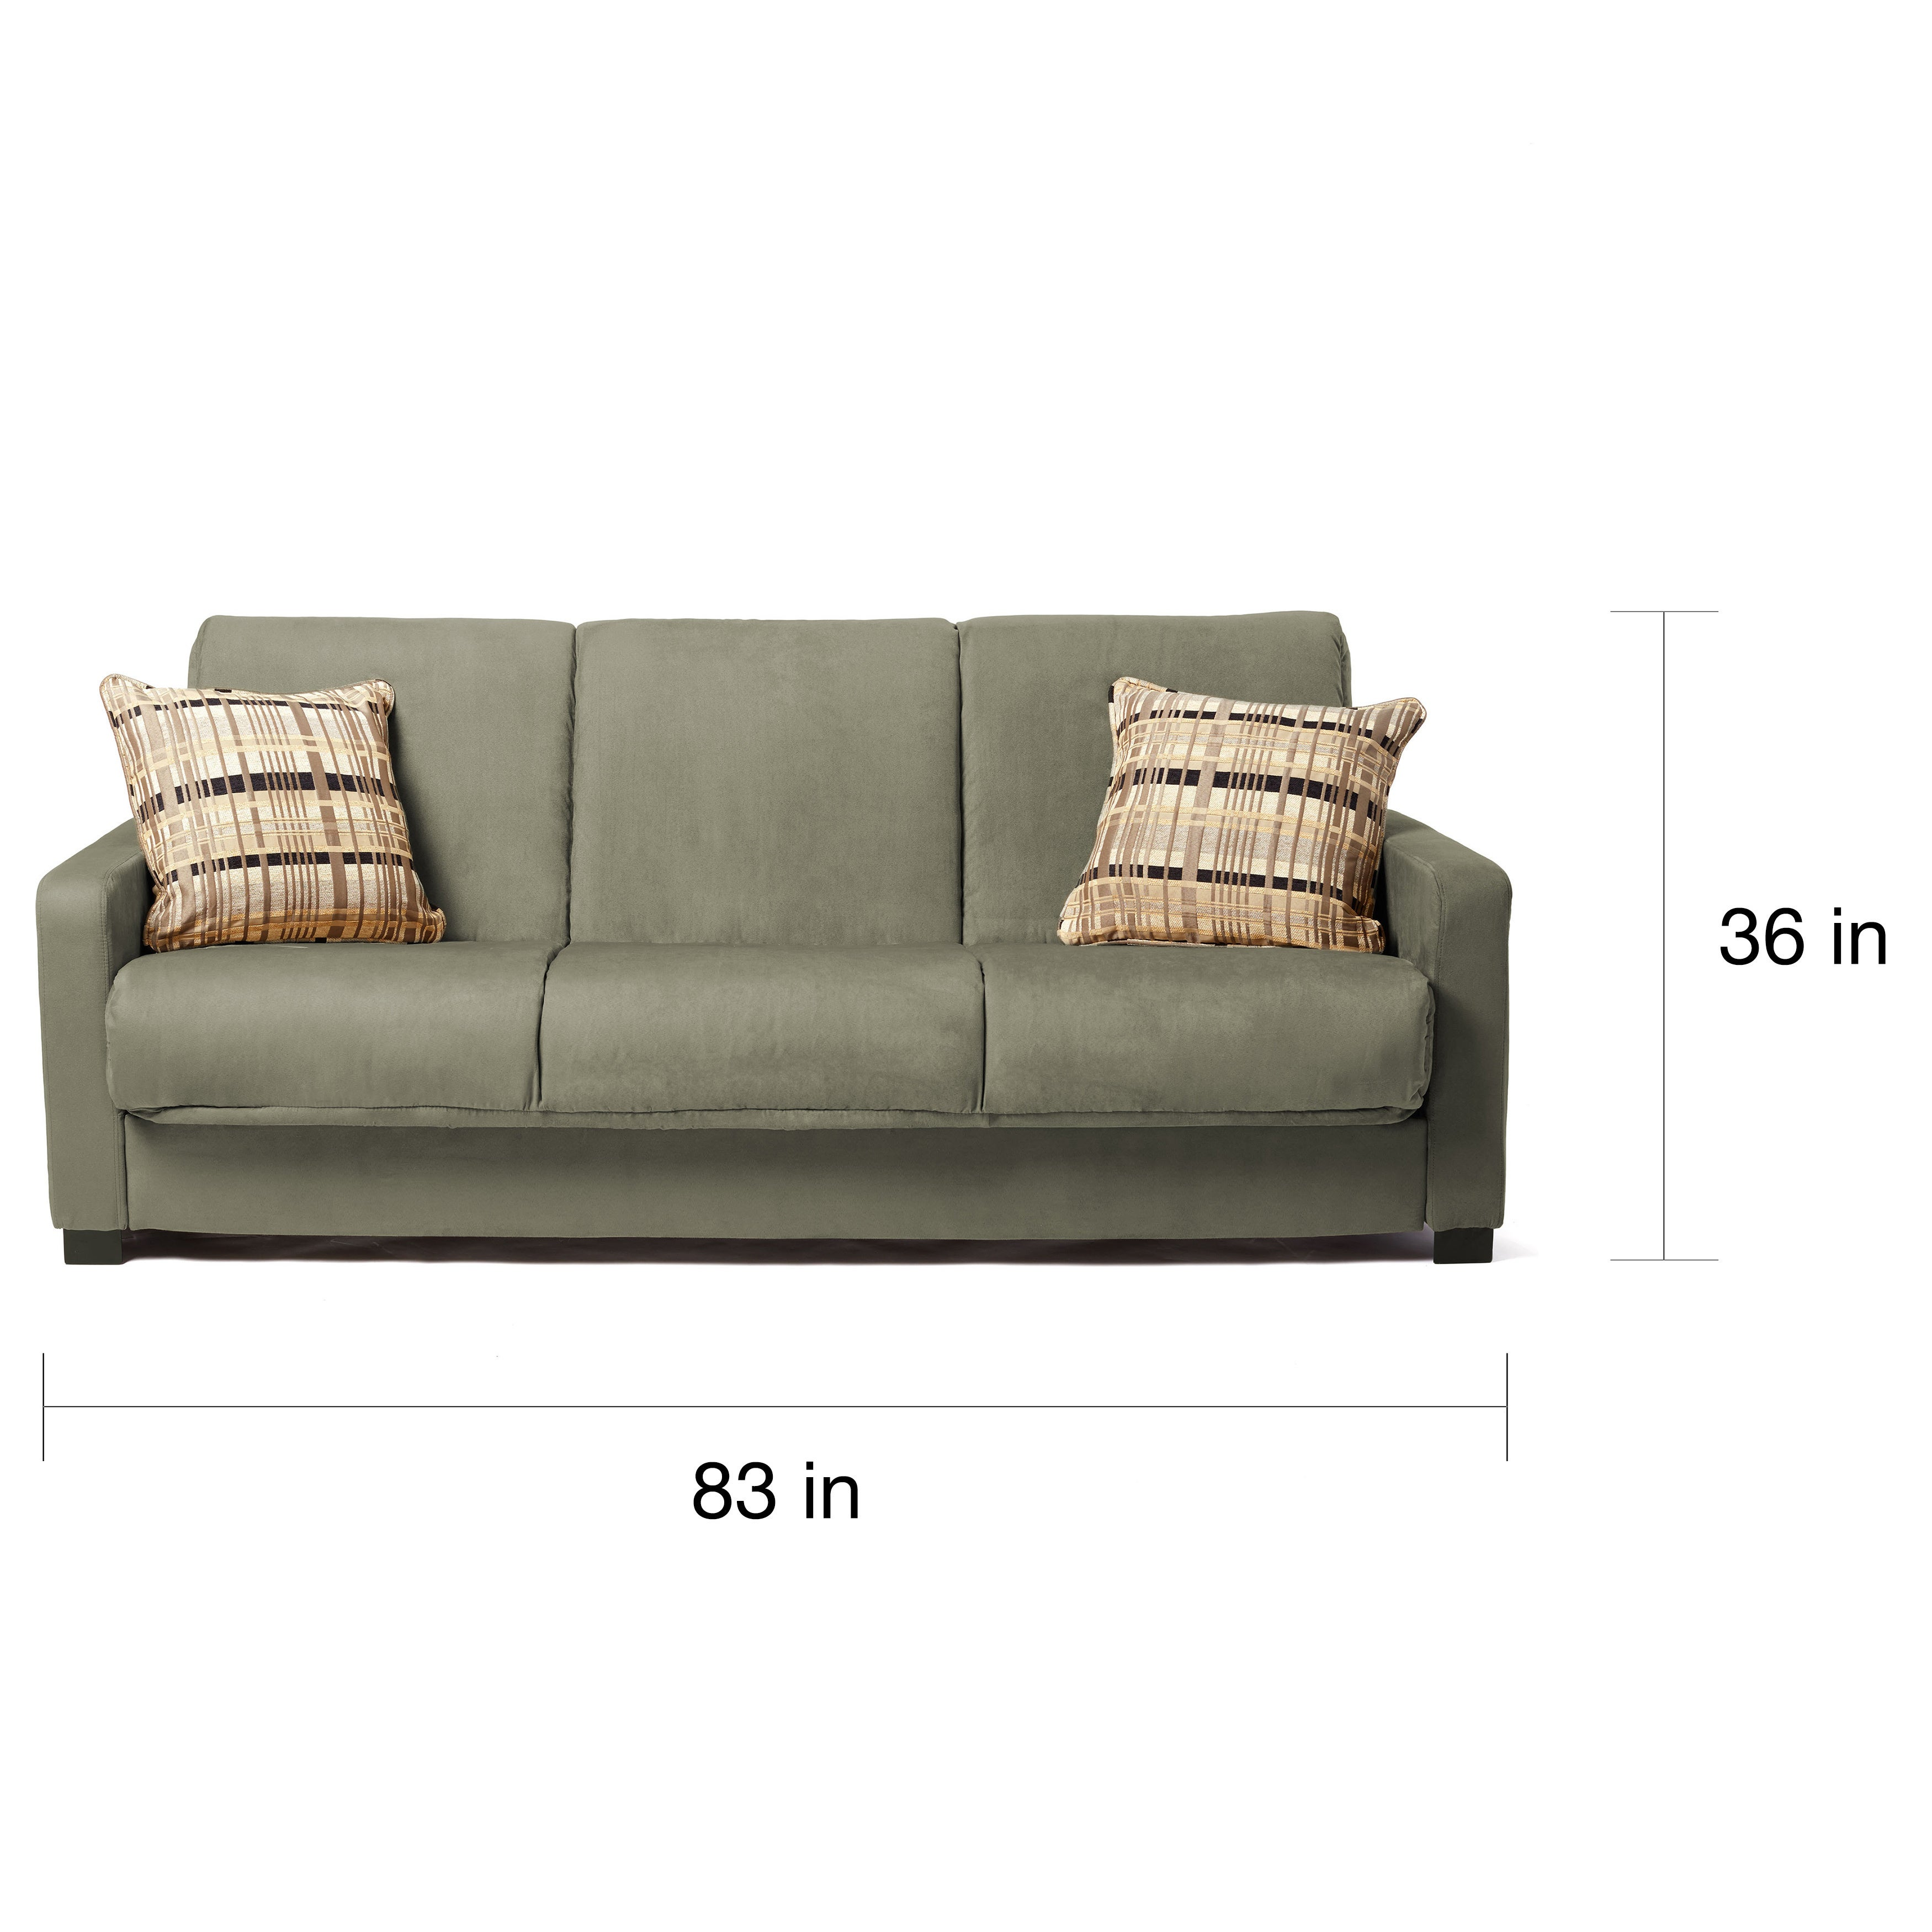 peb daybeds mark number esp couch crown and item adjustable products sofa sundown futon futons